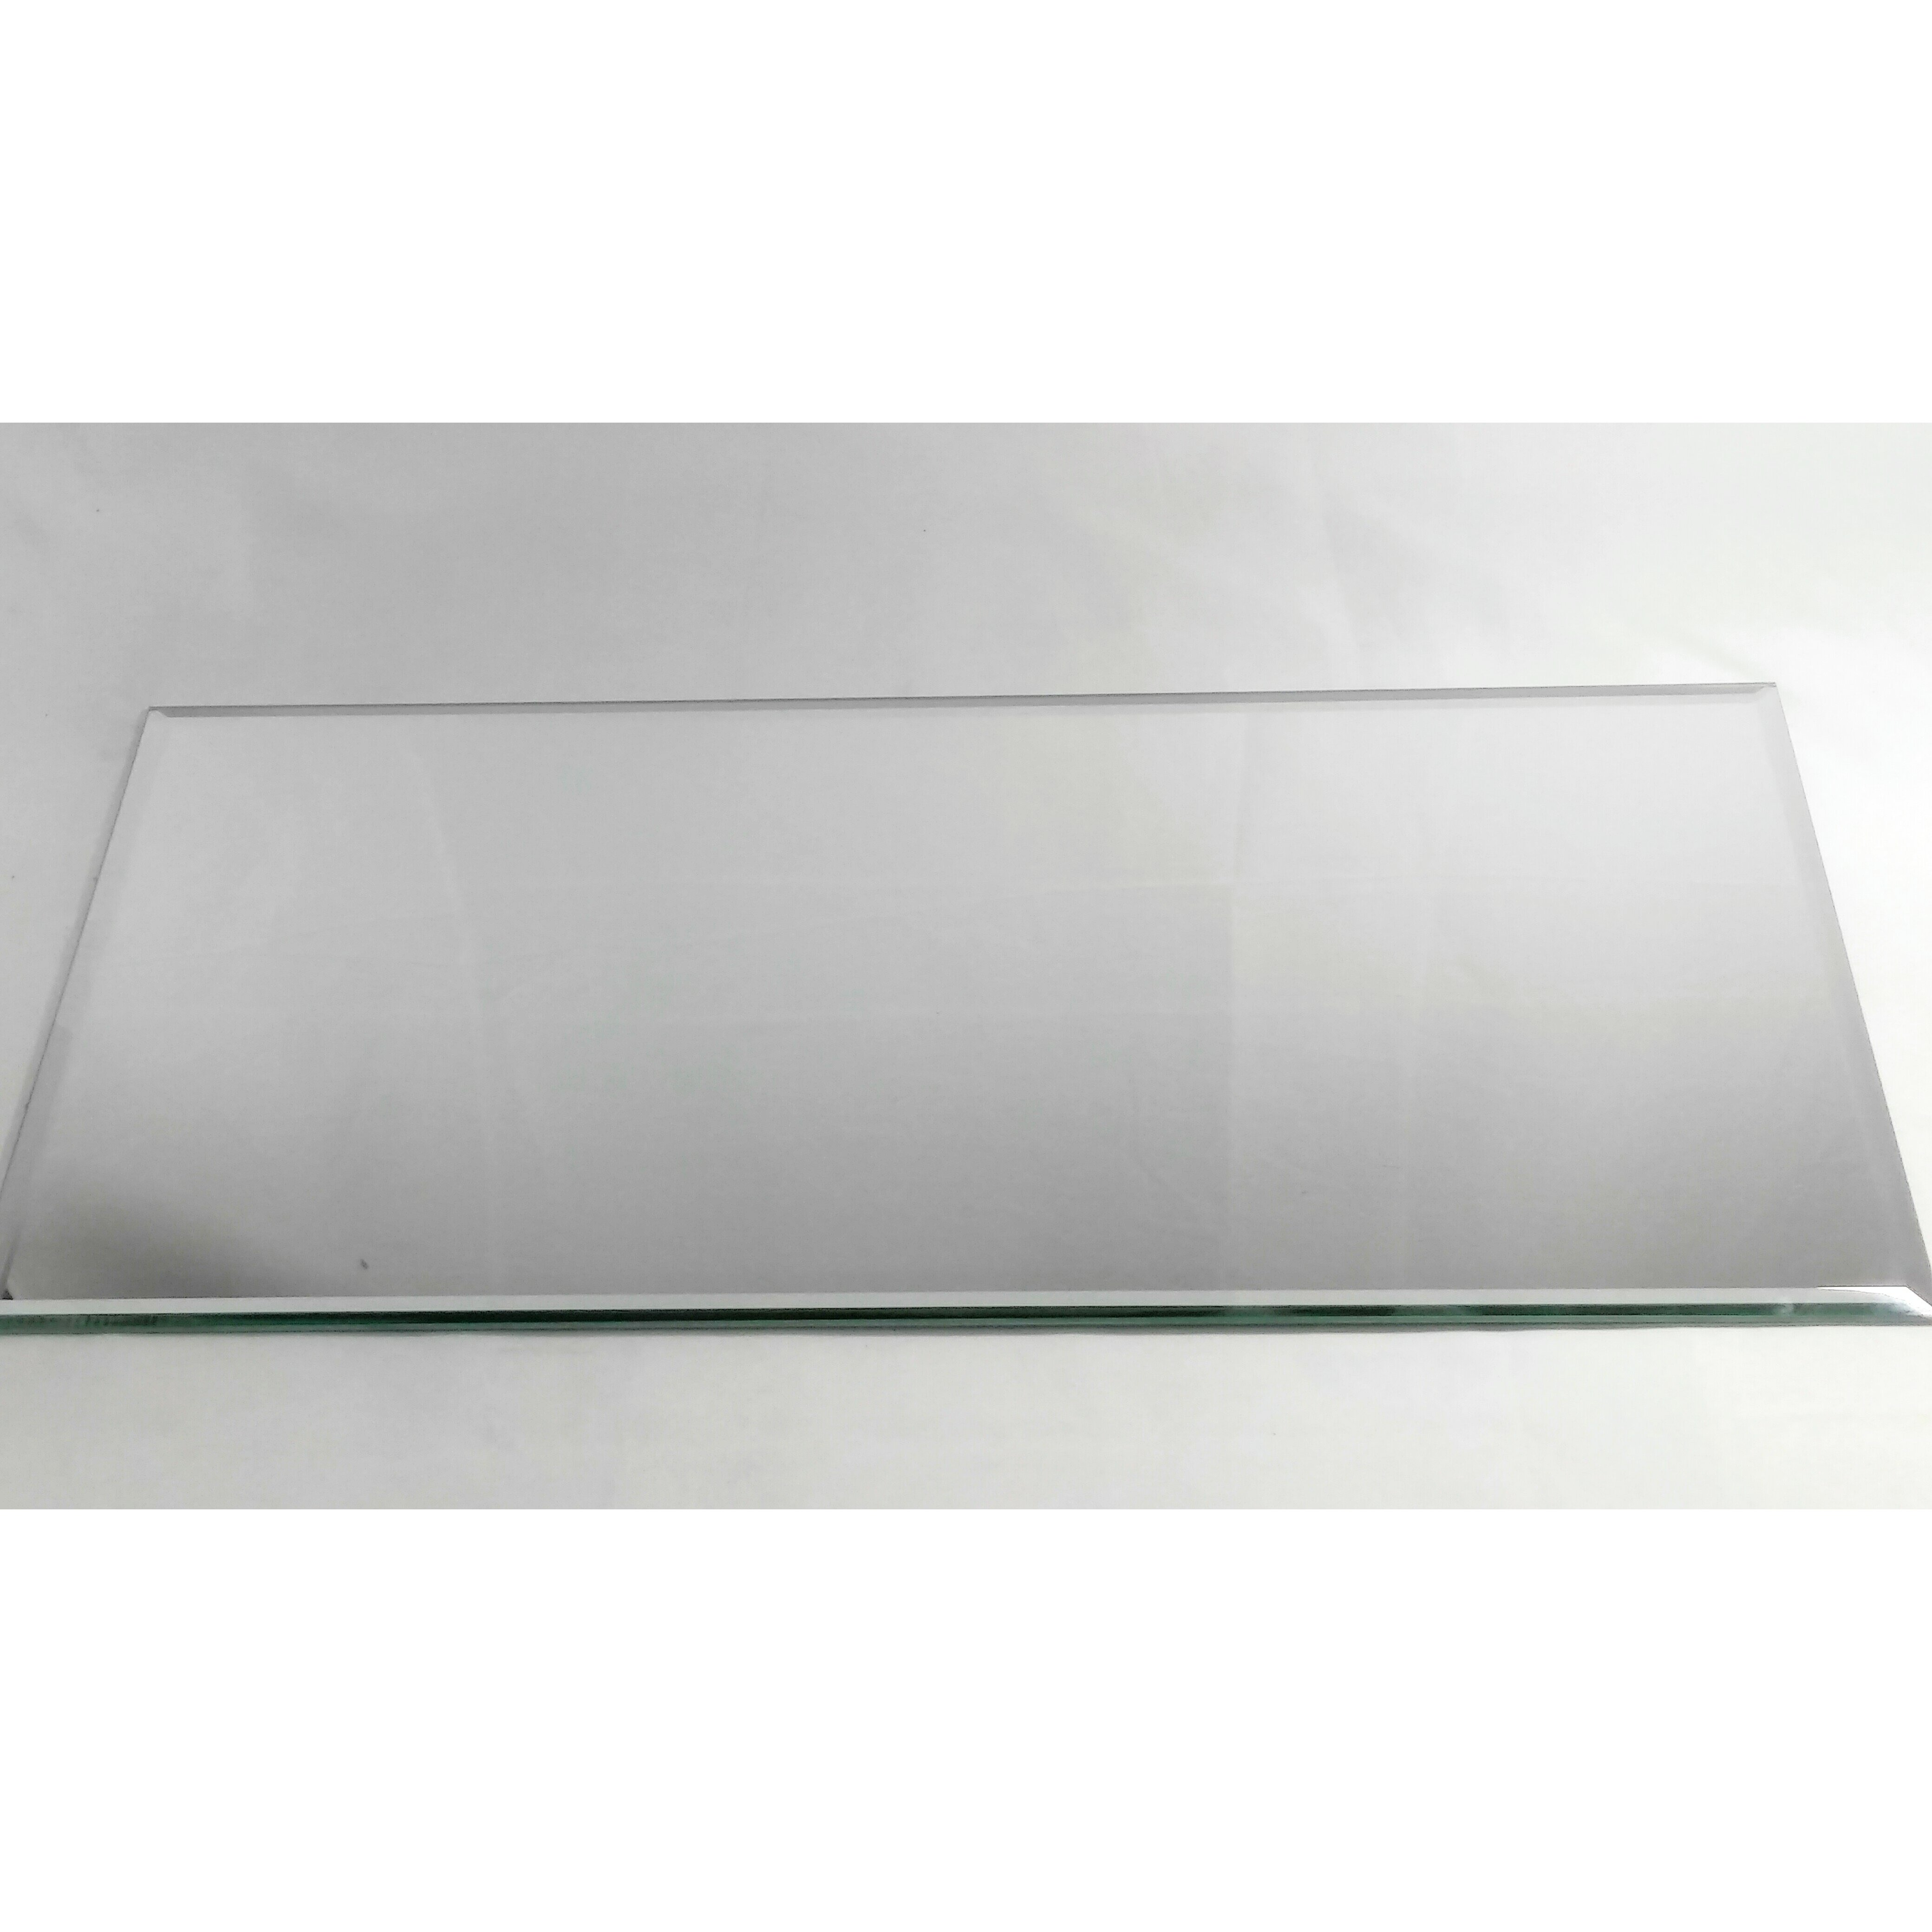 Reflections 12 x 24 mirror glass field tile in silver for 12 x 24 glass tile